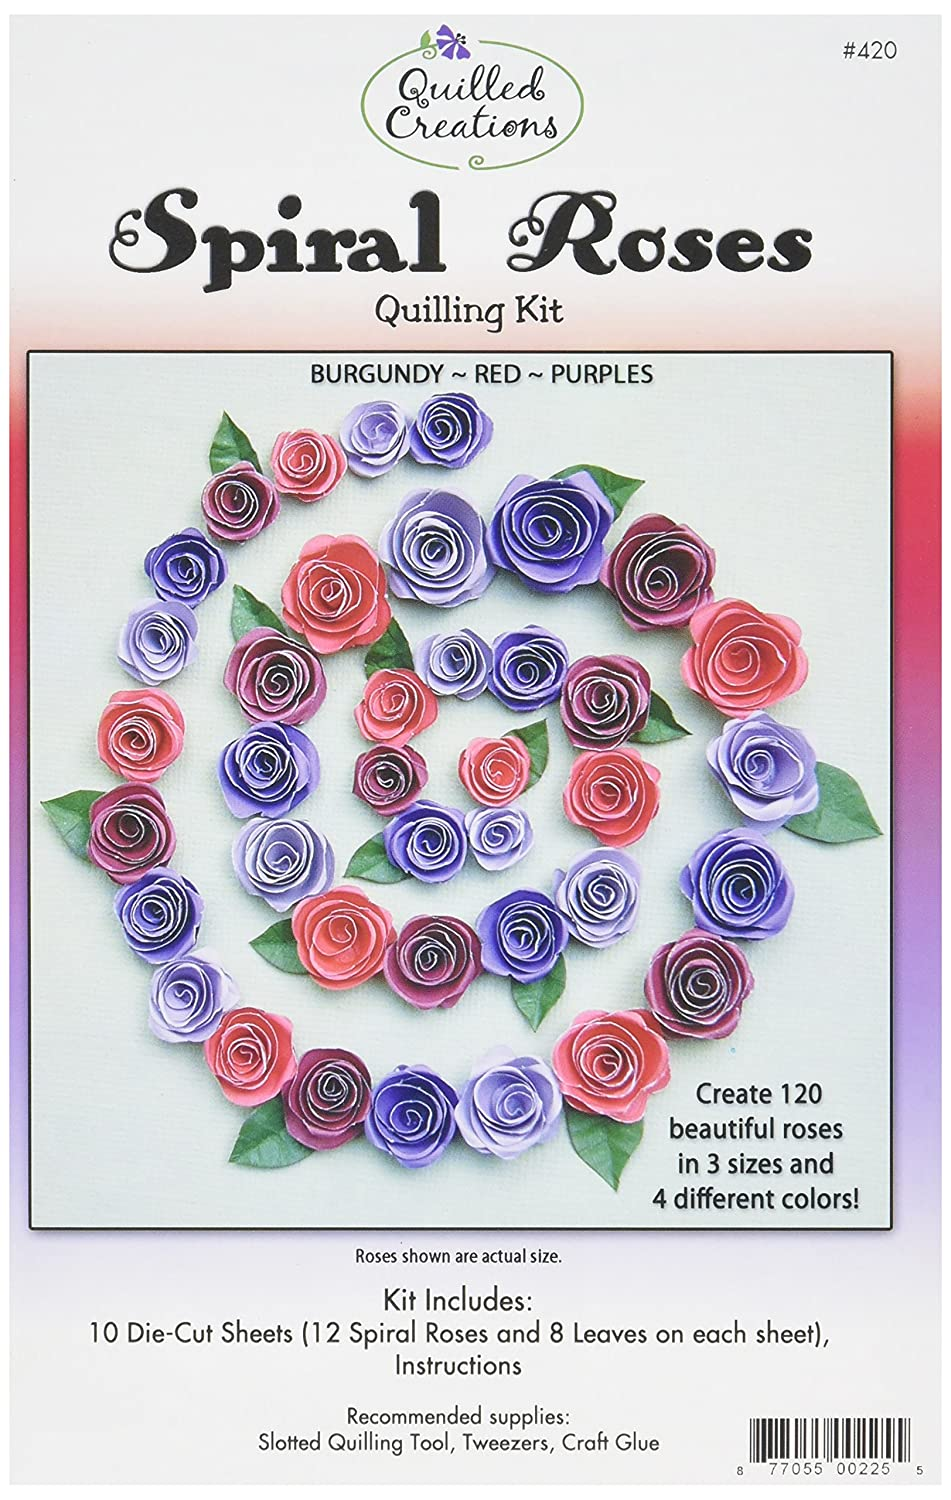 Quilled Creations Clearsnap 15188 ColorBox Pigment Ink Pad-Citrine Notions - In Network QC420